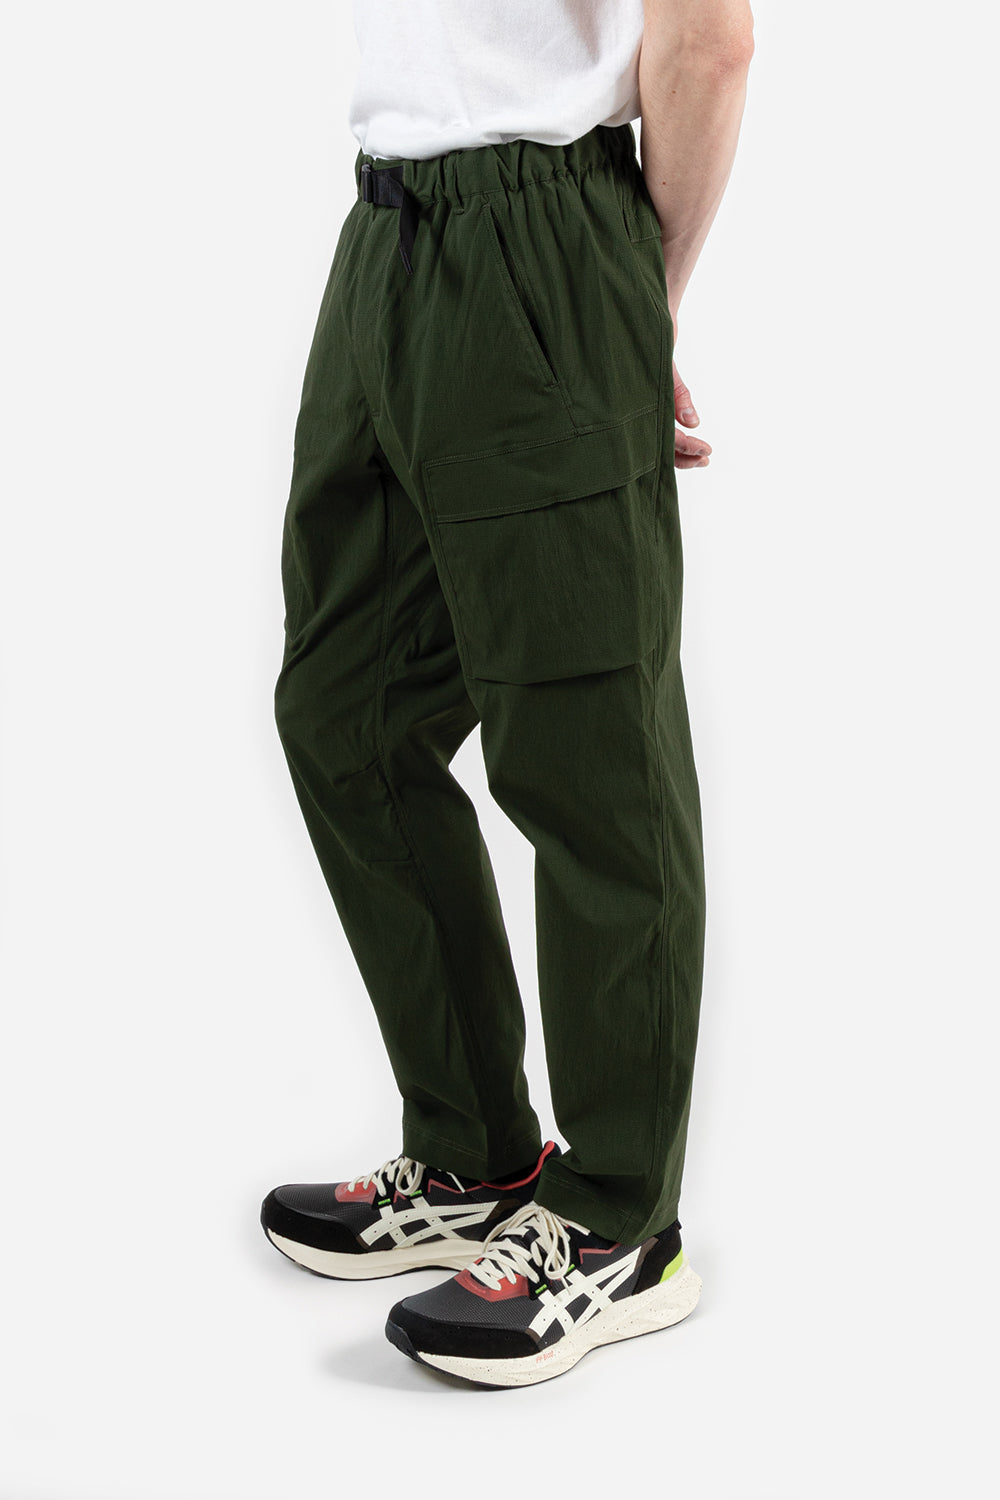 goldwin-cordura-stretch-cargo-pants-cypress-green